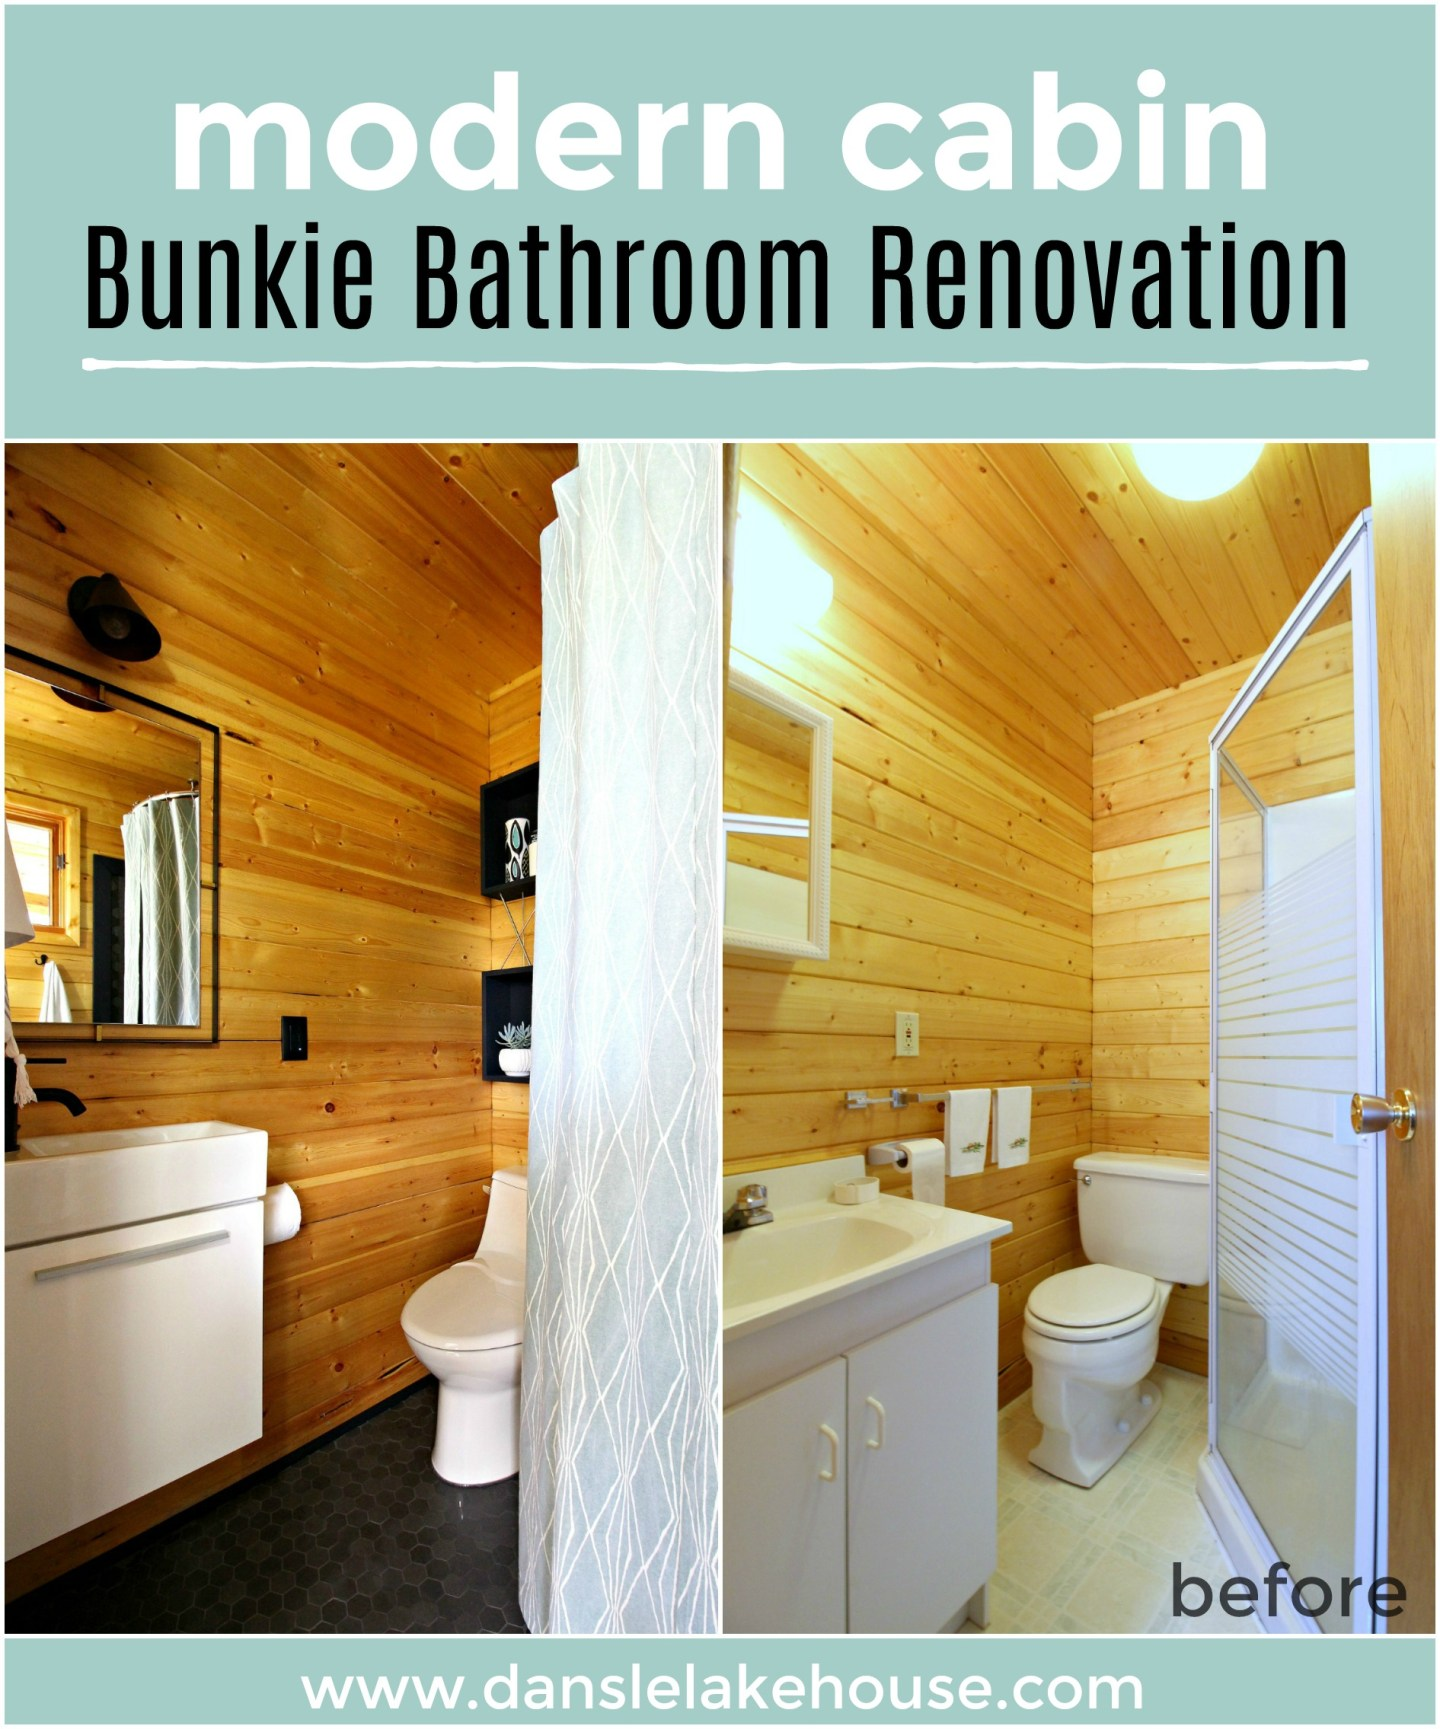 Modern Cabin Bunkie Bathroom Renovation with Stock Tank Shower and Pine Walls